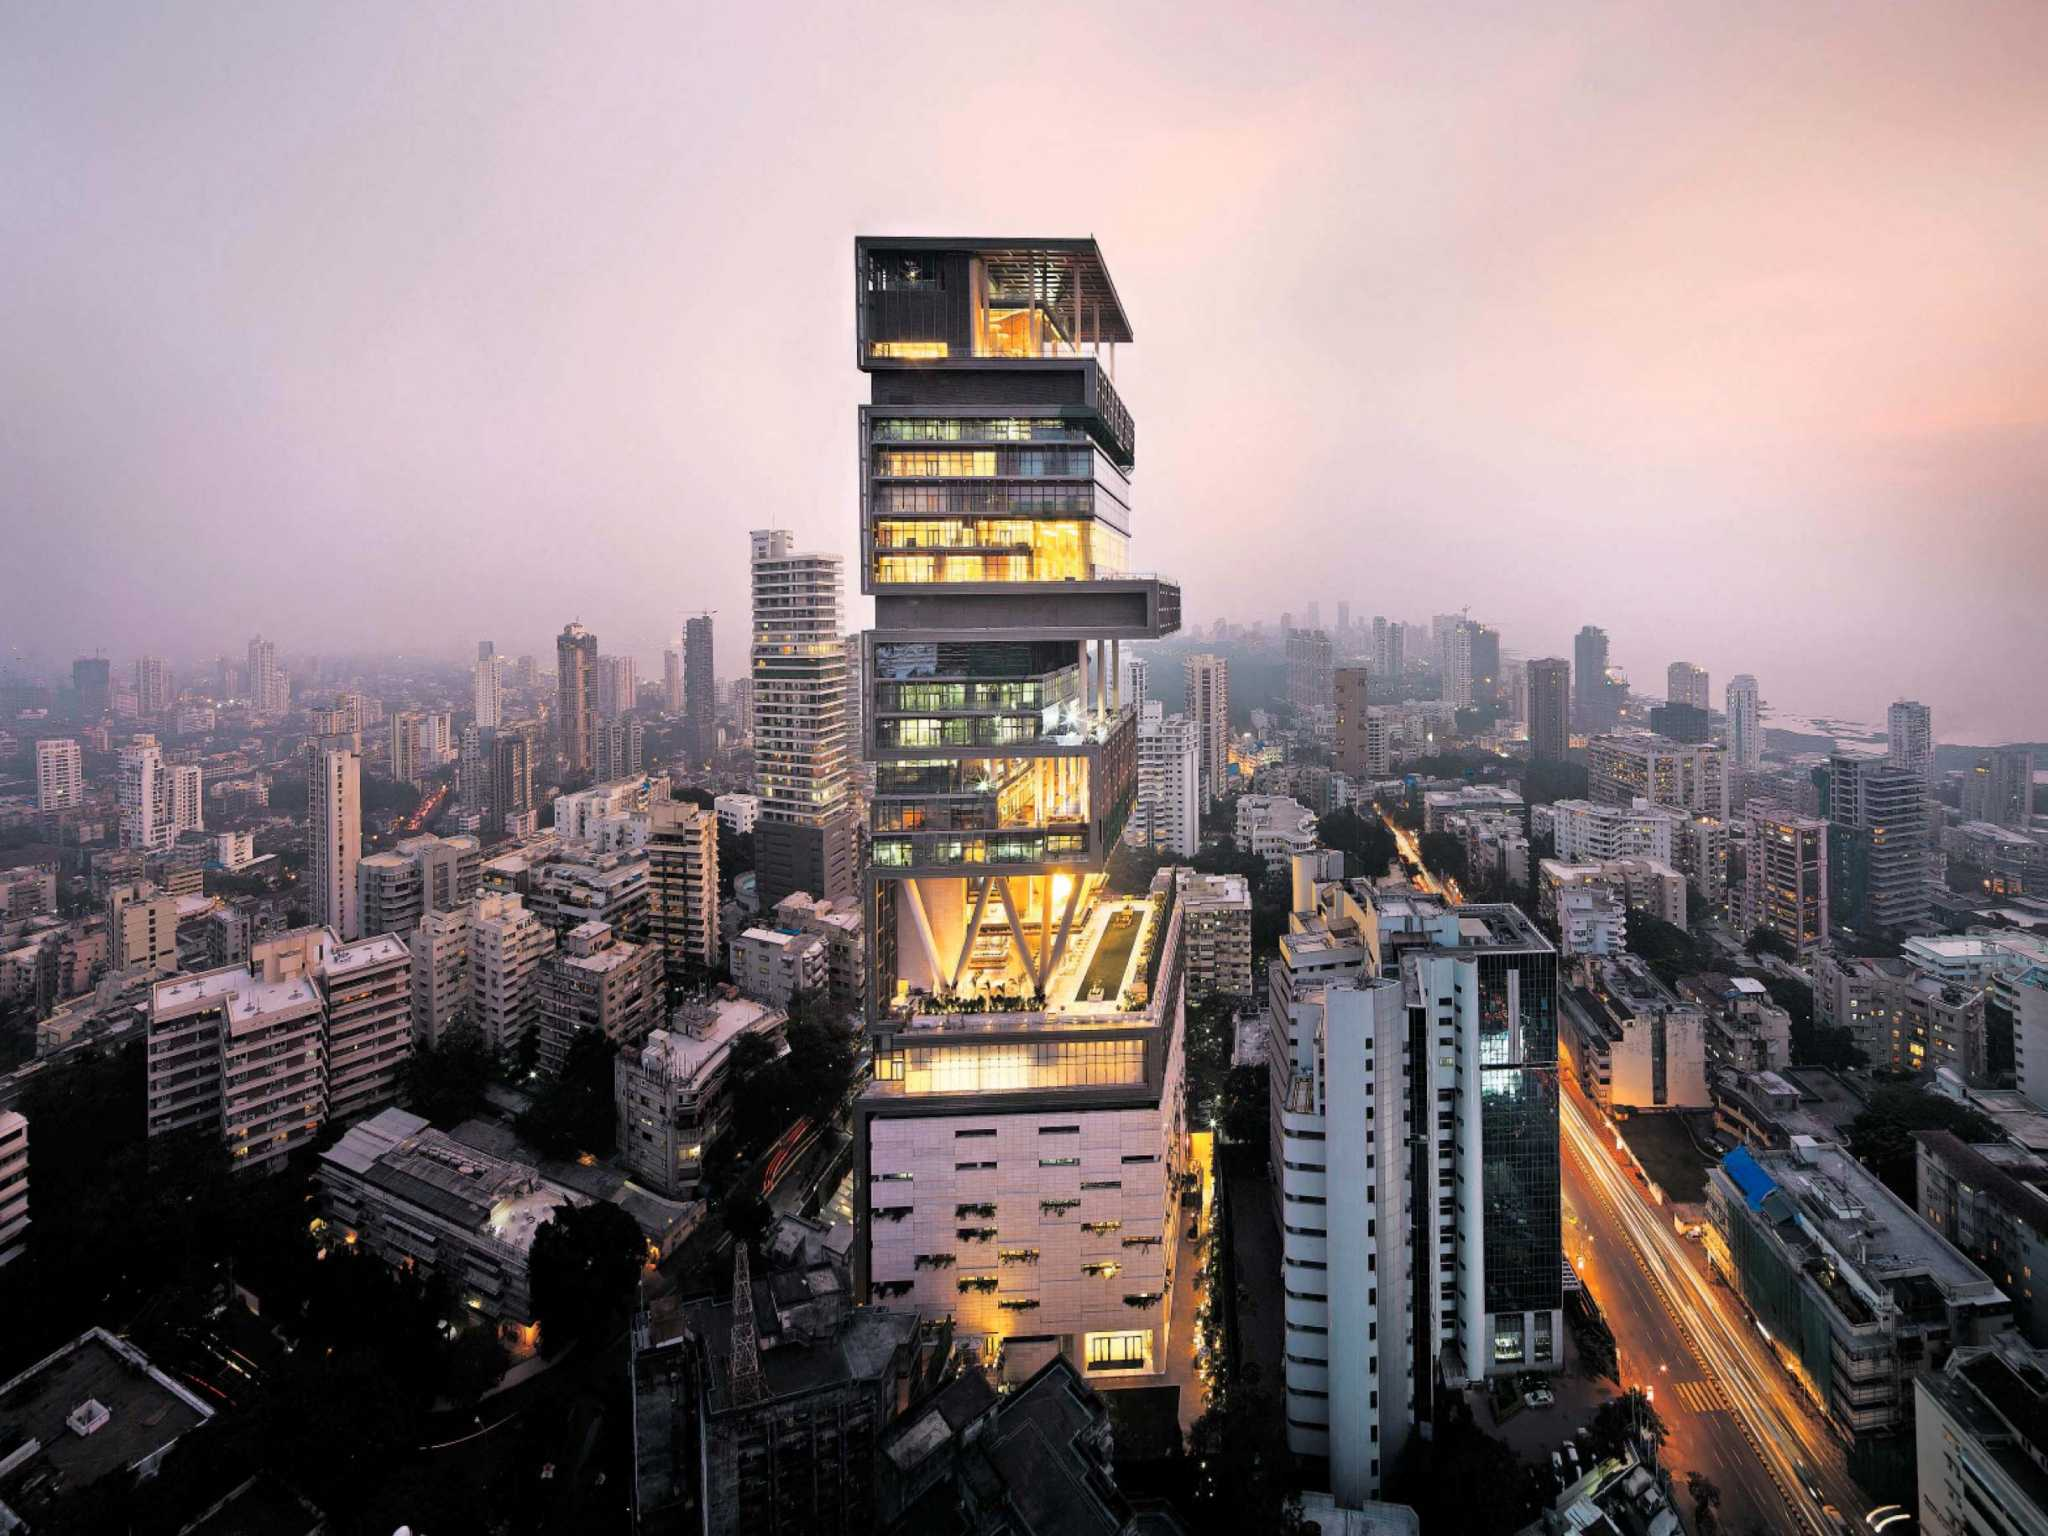 Antilia - Reliance Industries' Chairman Mukesh Ambani's Dream House